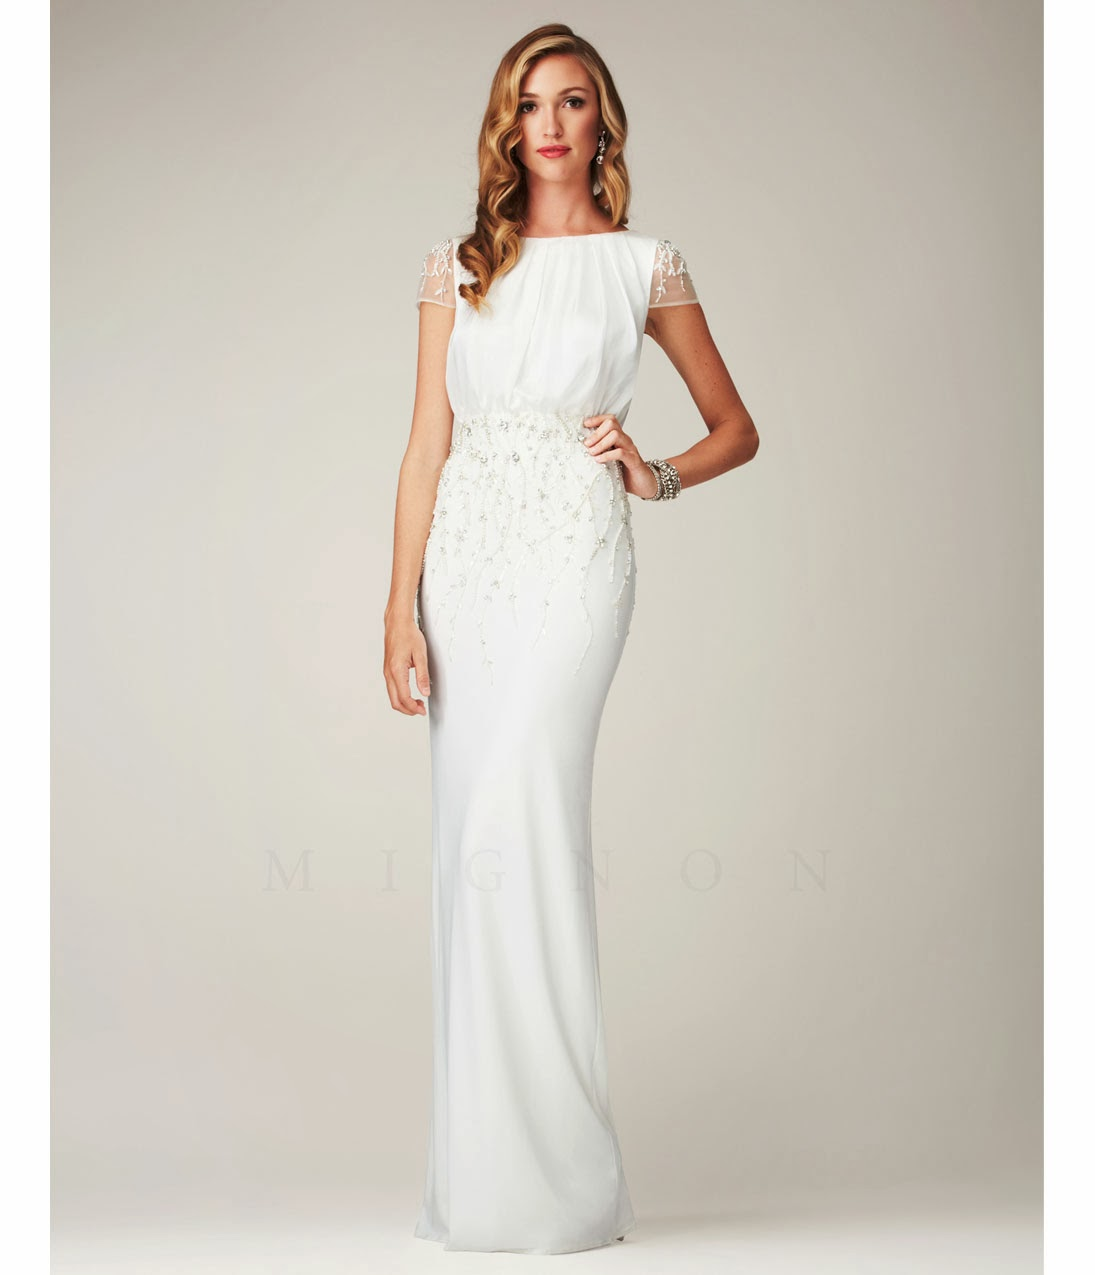 White Dress Pictures: February 2014 White Prom Dress